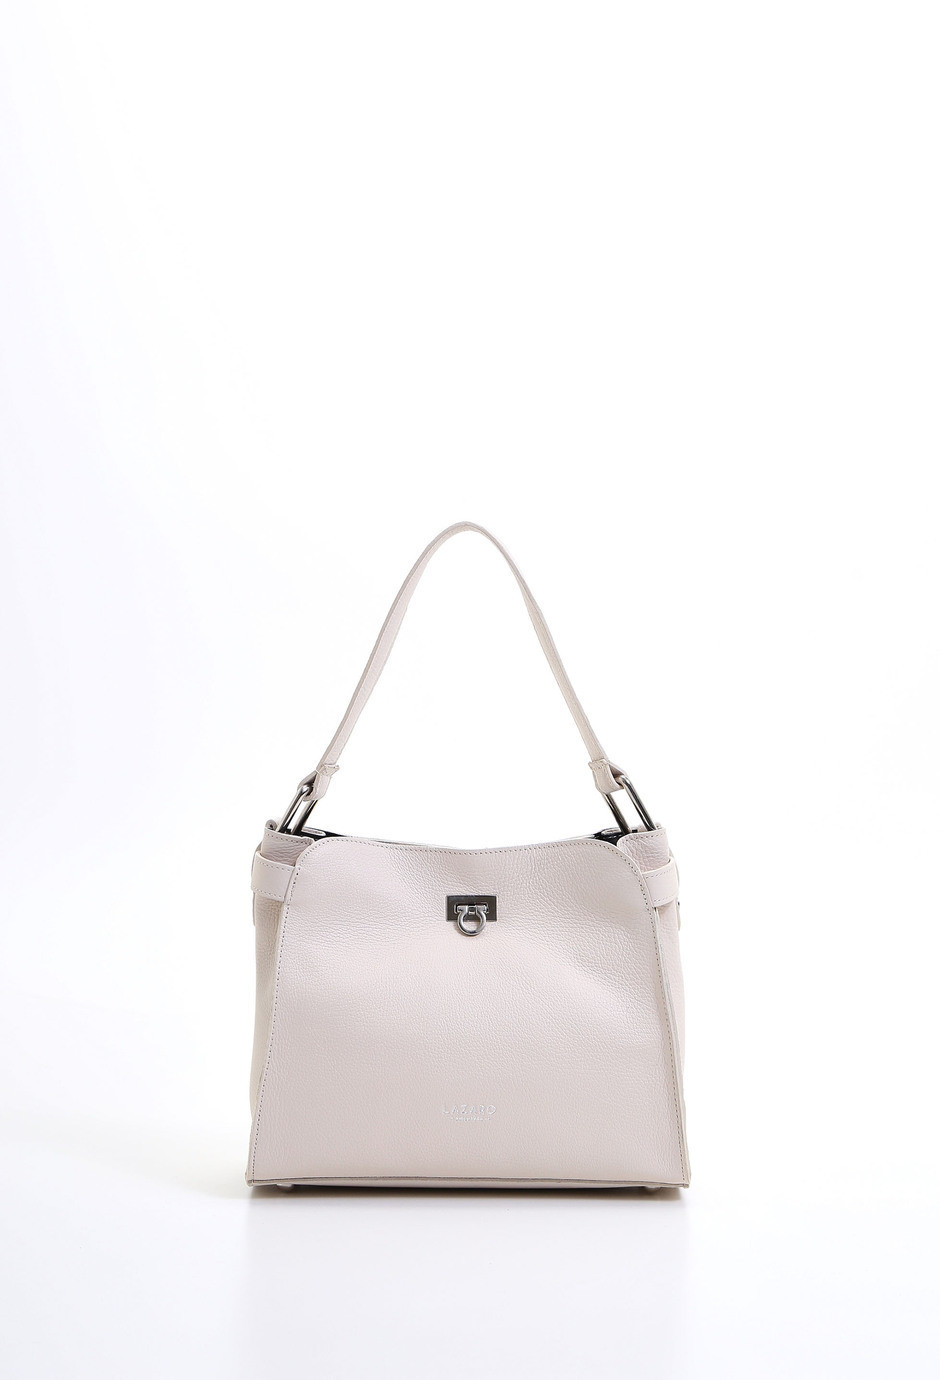 Lazaro Mini Bag Maui cream